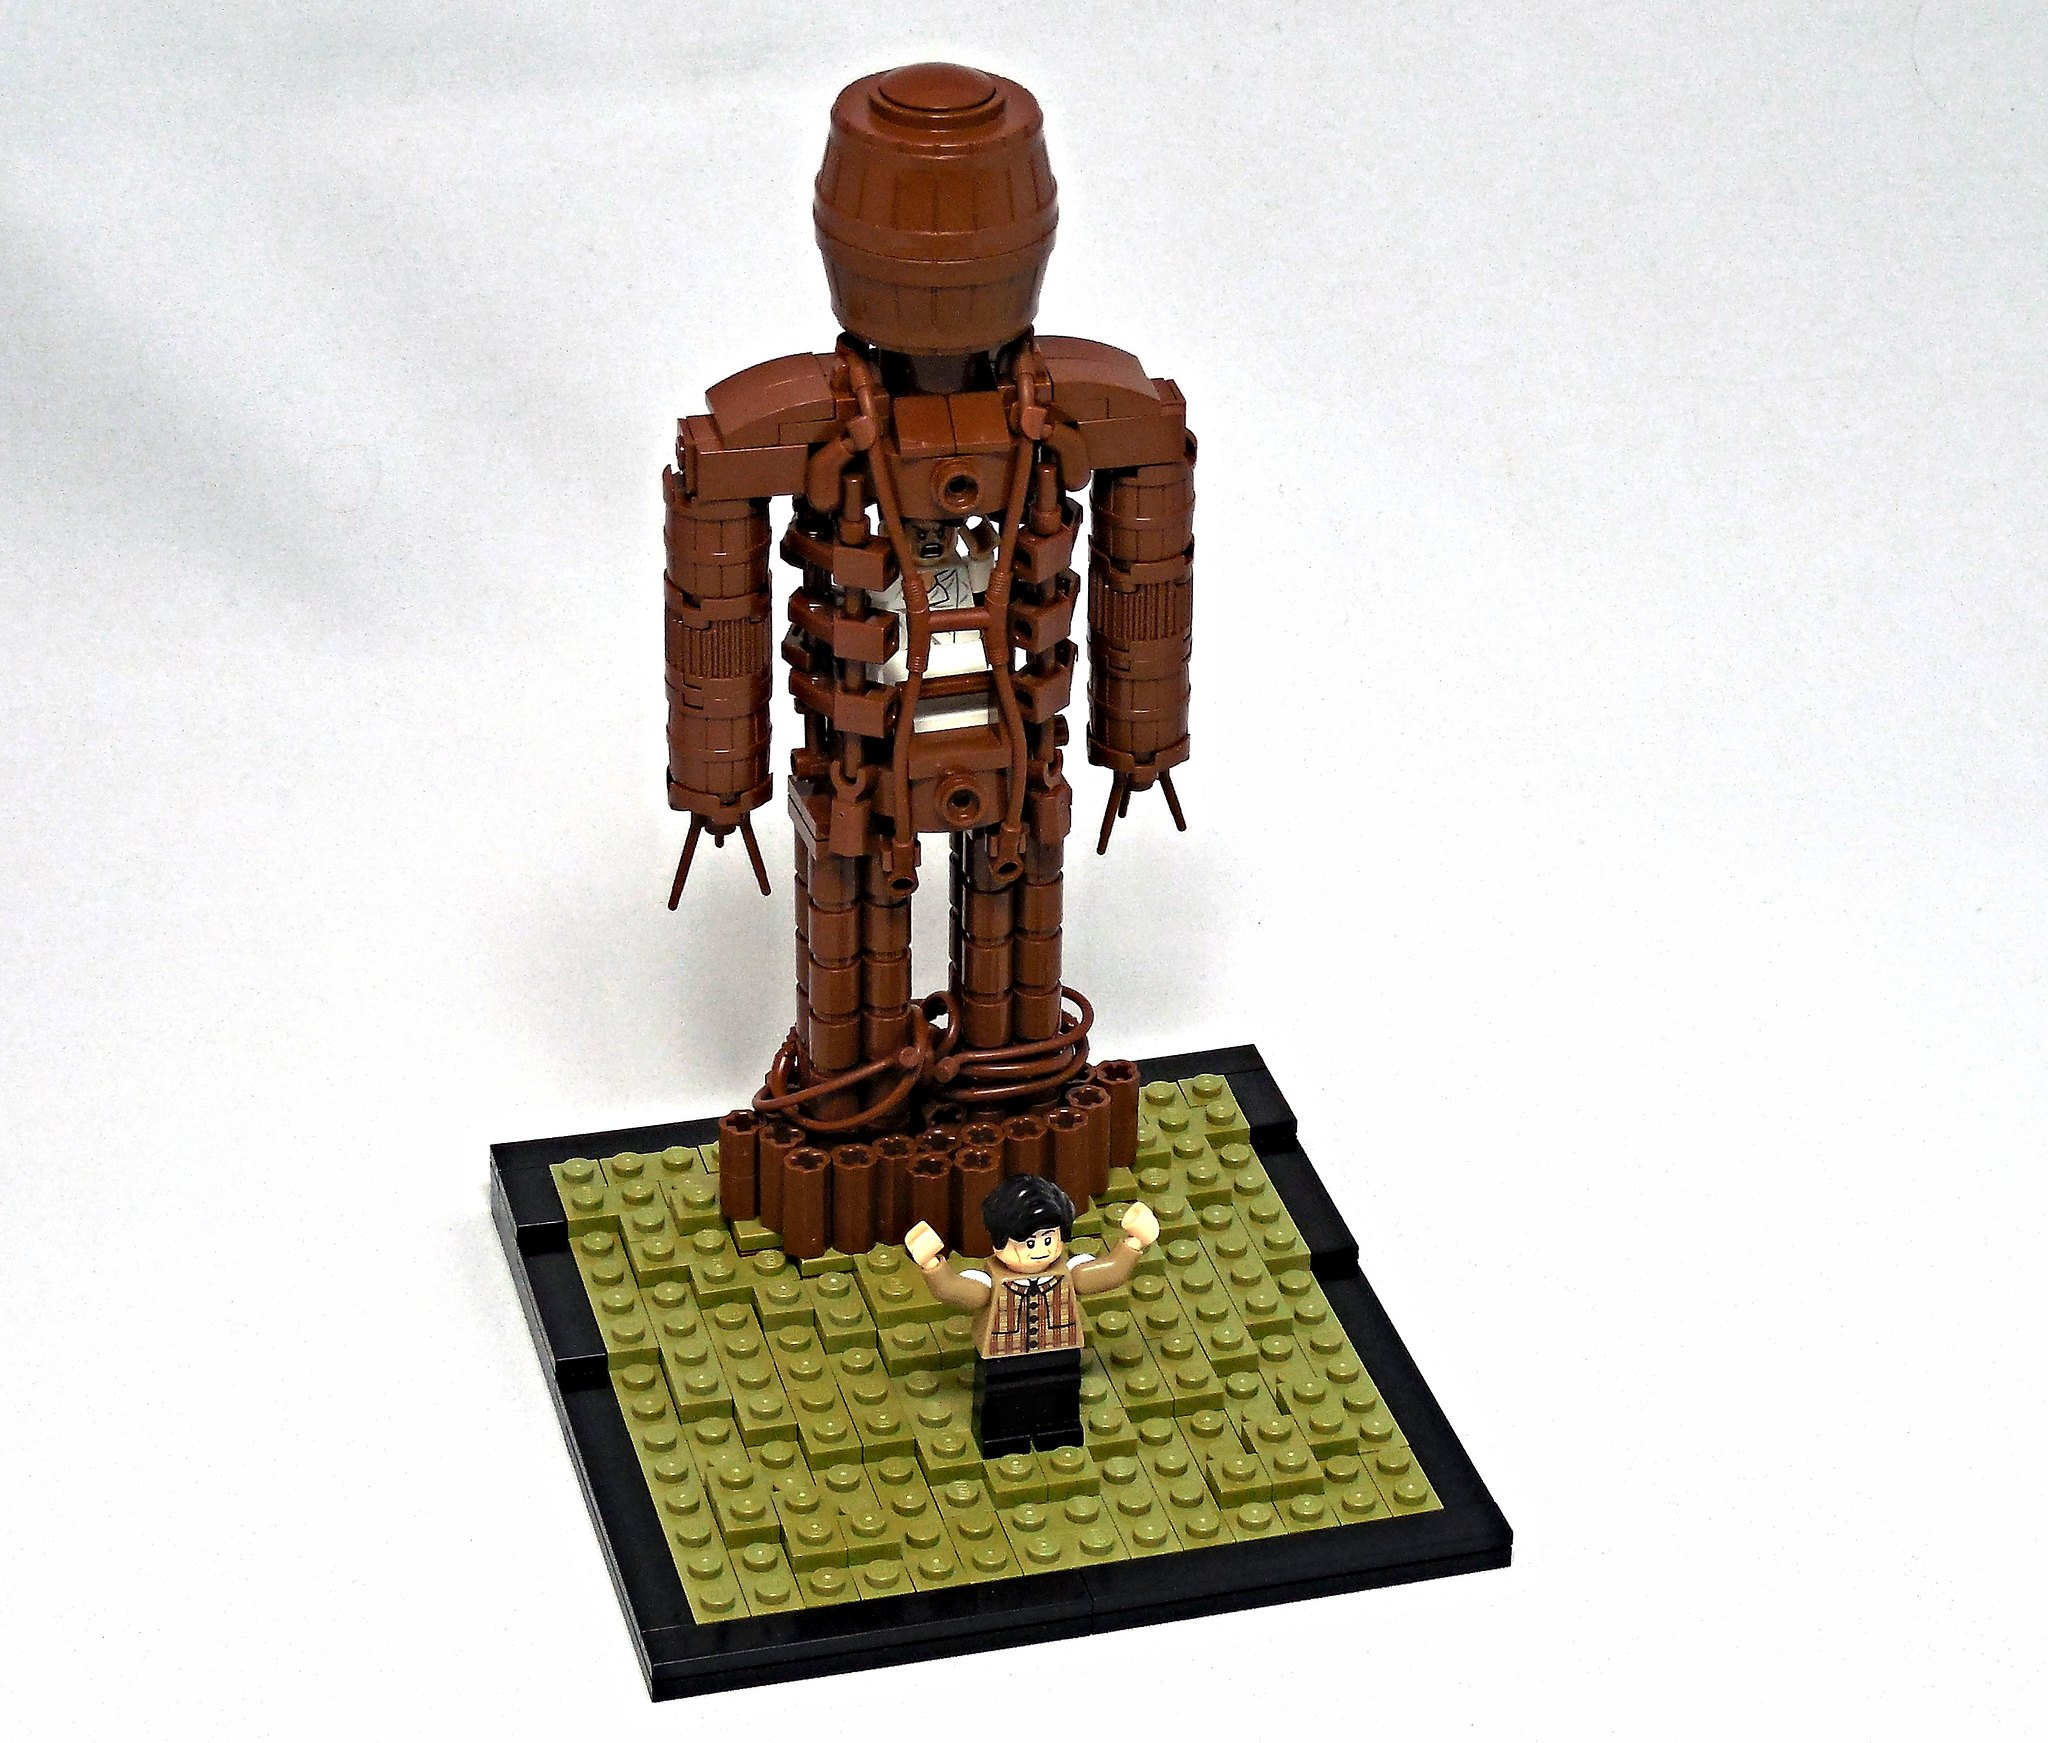 LEGO® MOC by Vitreolum: The Wicker Man